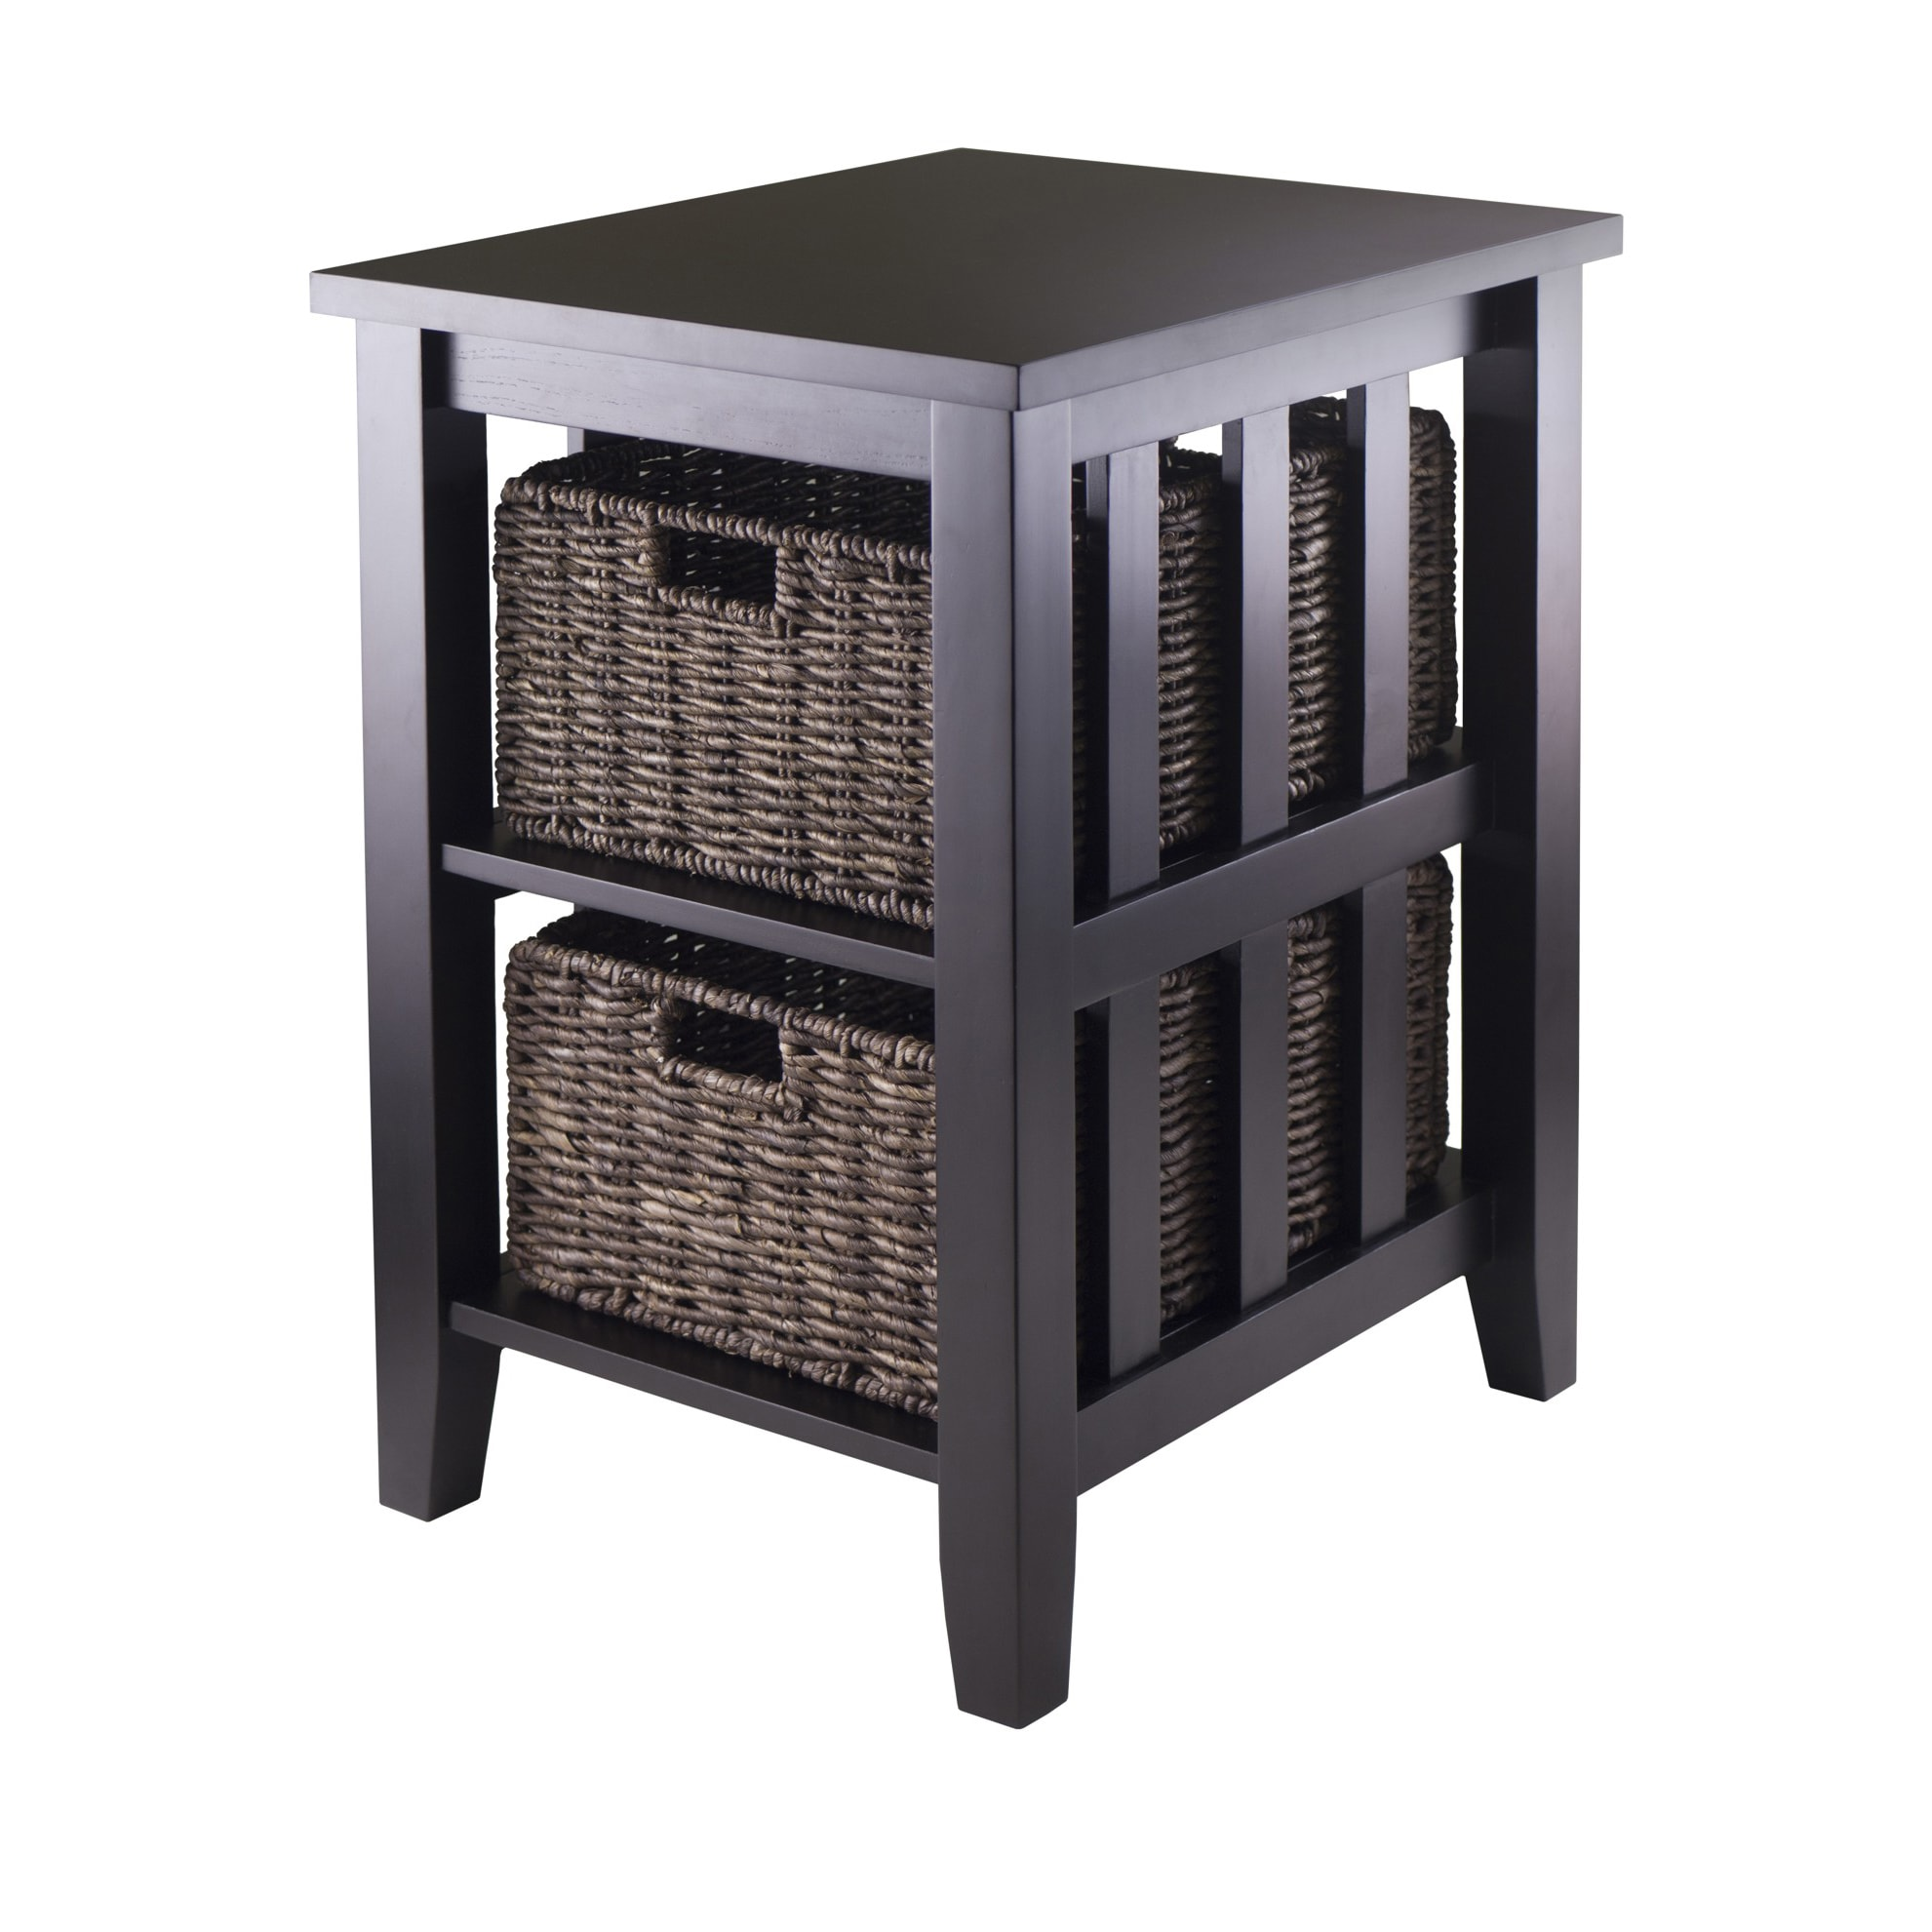 Copper Grove Shasta Trinity Espresso Wood Side Table With 2 Foldable Wicker Baskets Free Shipping Today 22801661